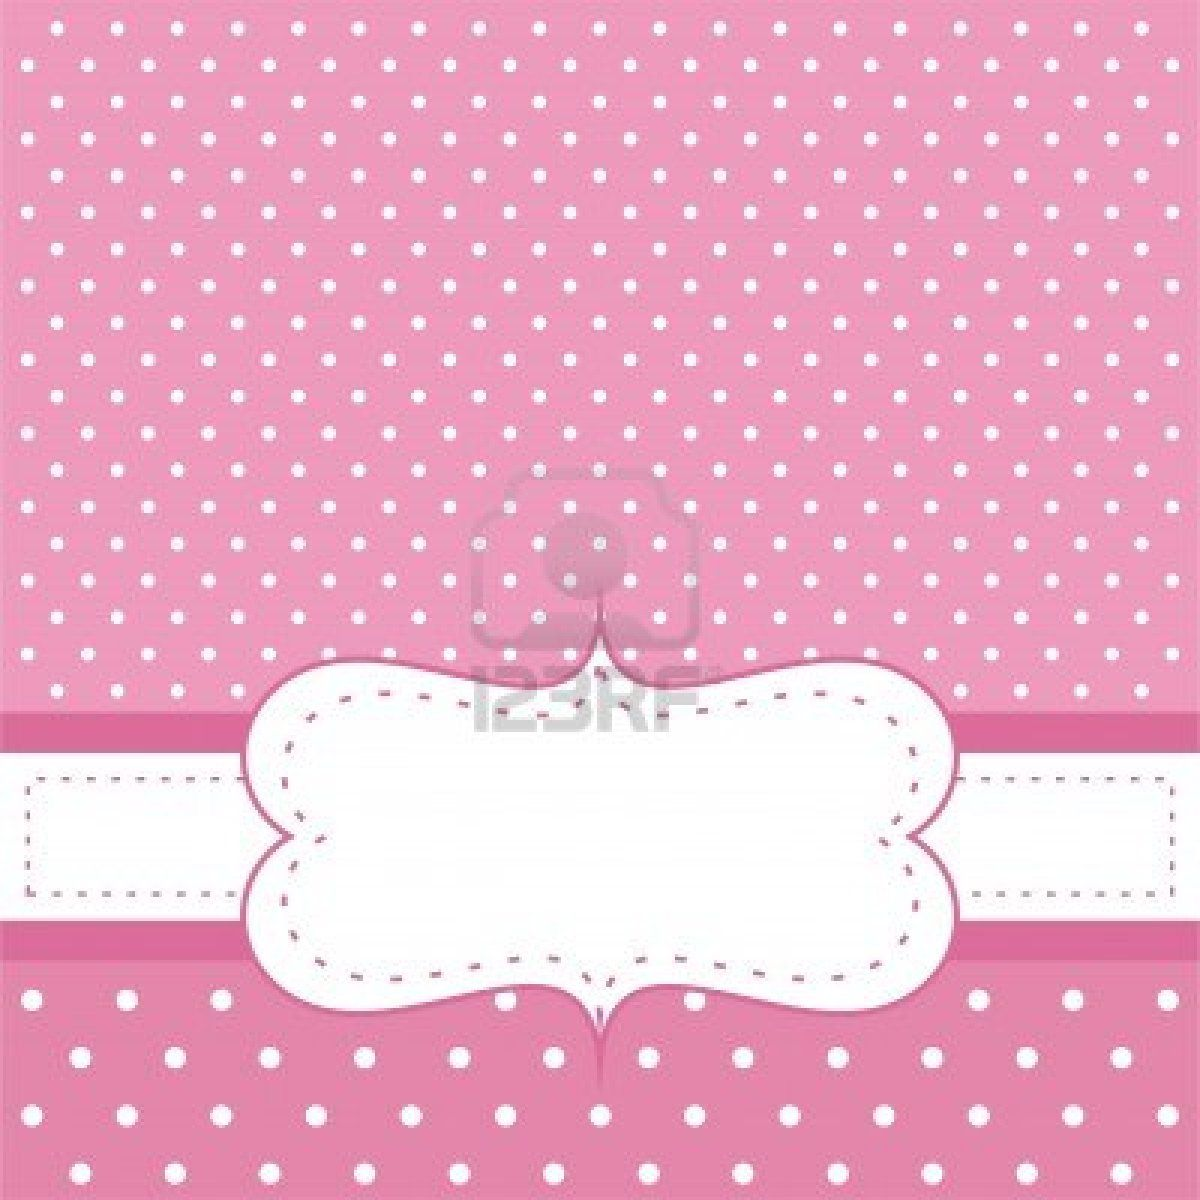 Sweet Pink Polka Dots Card Or Invitation Cute Background With White Space To Put Your Own Text Message Cocktail Party Birthday Baby Shower Wedding